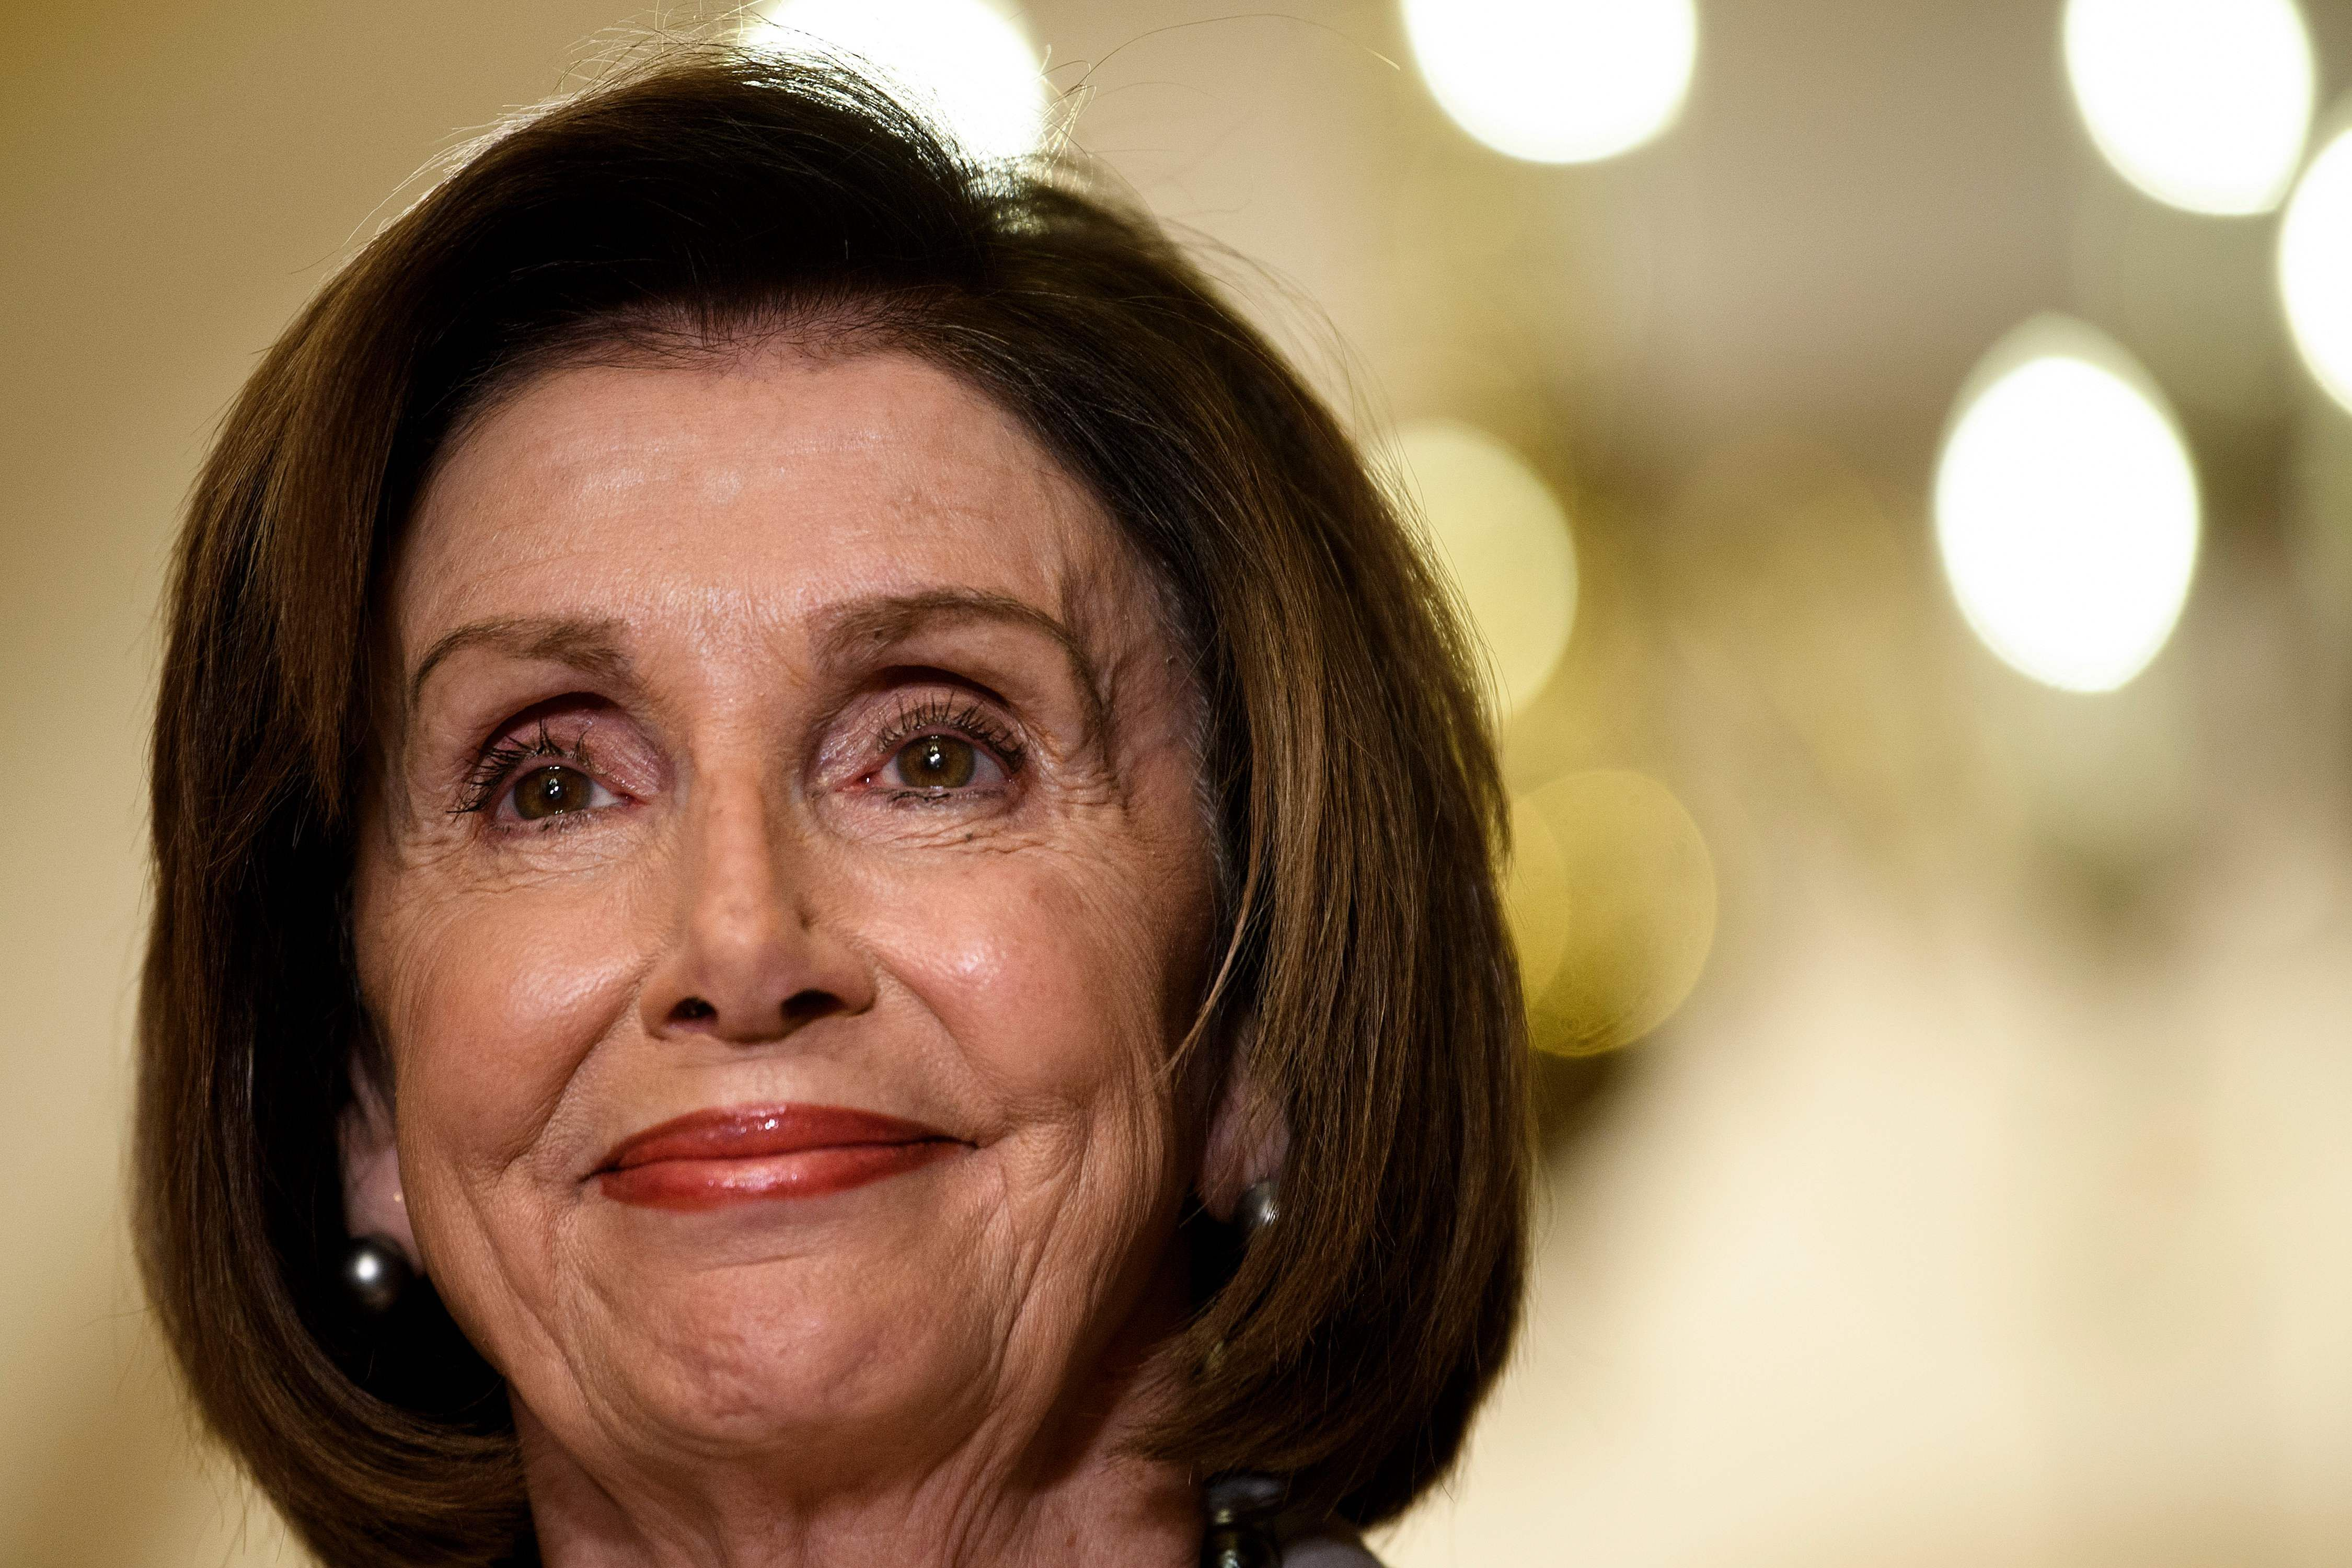 Pelosi, congressional leaders hold talks with King Abdullah II in Jordan at 'critical time' for the region